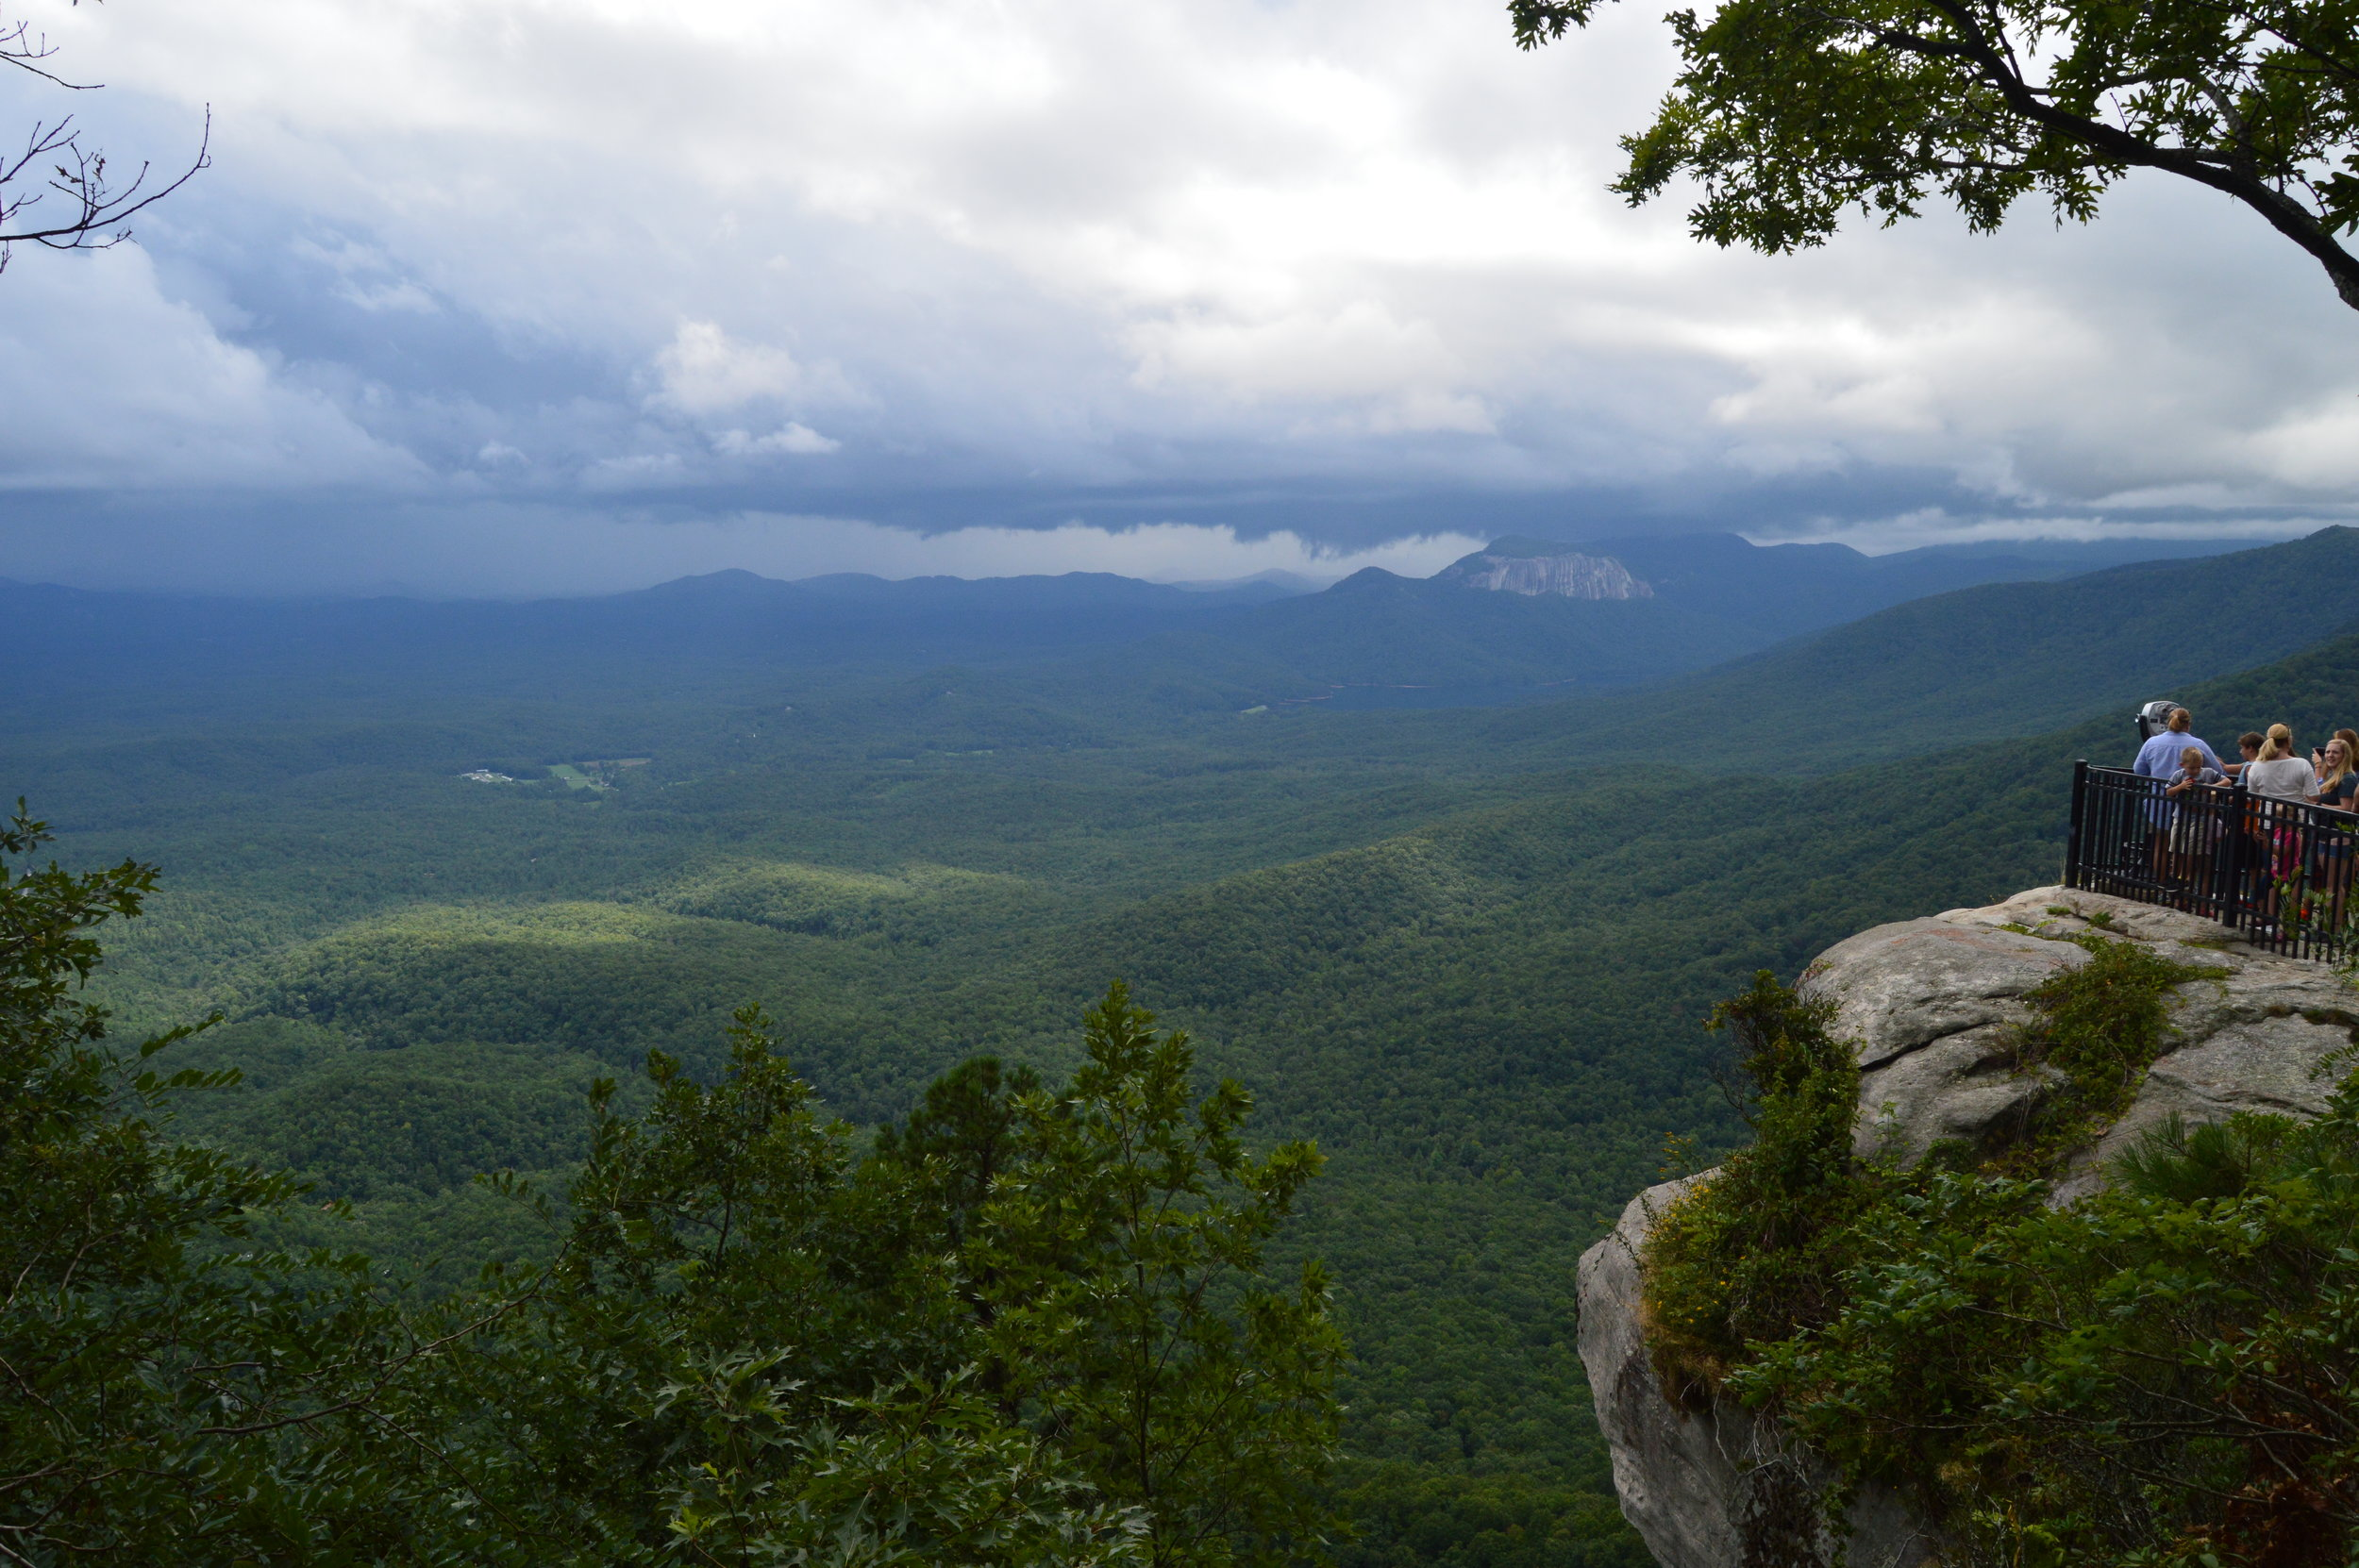 - Caesar's Head State Park north of Greenville provides unparalleled views of the foothills of South Carolina.